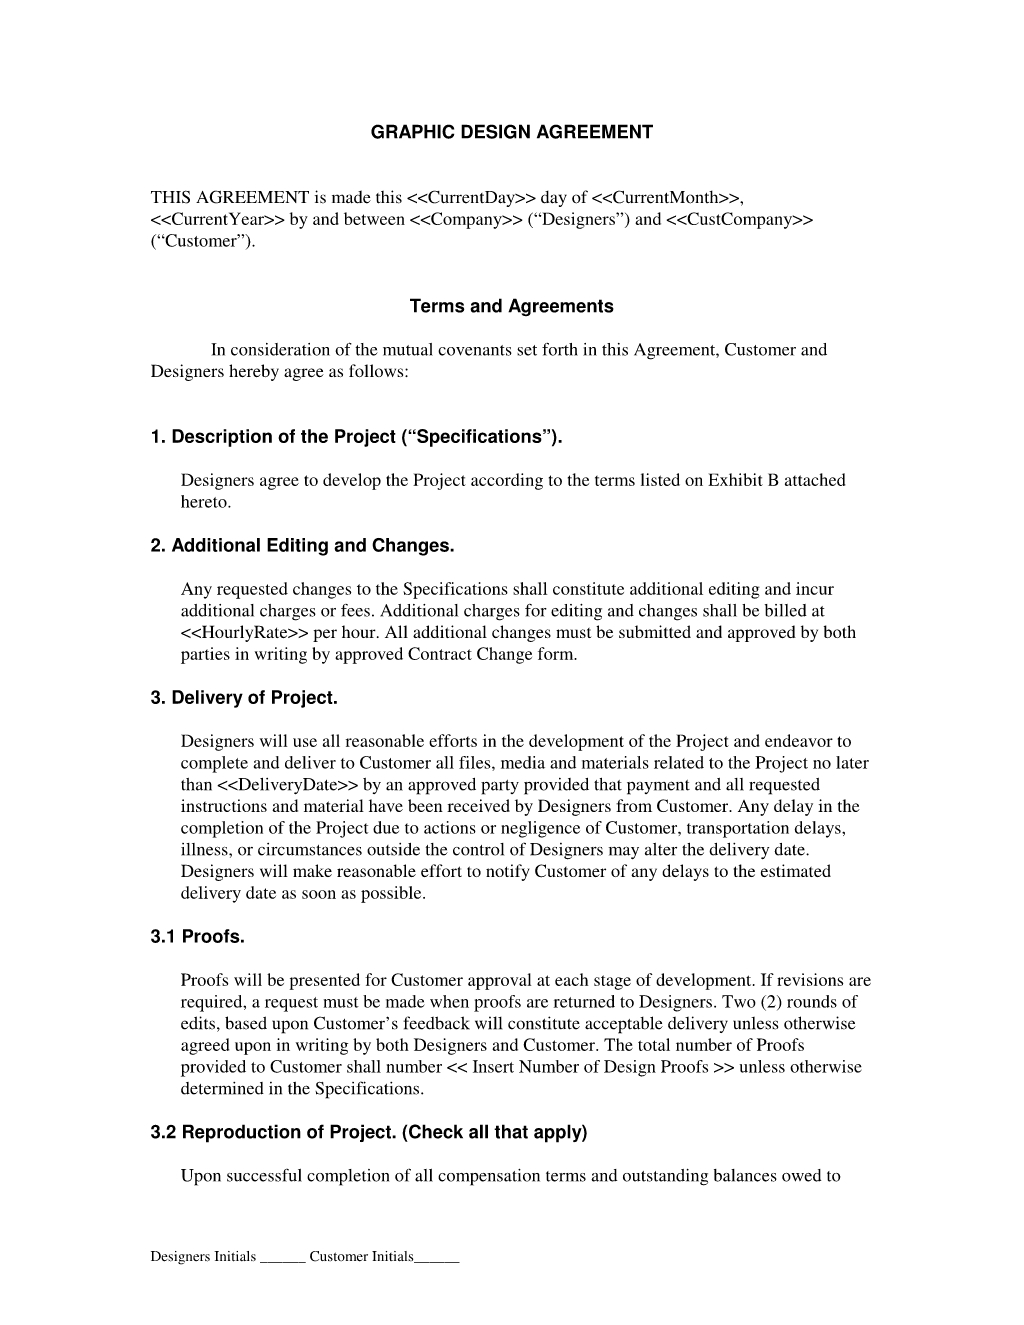 Graphic Design Contract | Simple Strat Office | Pinterest